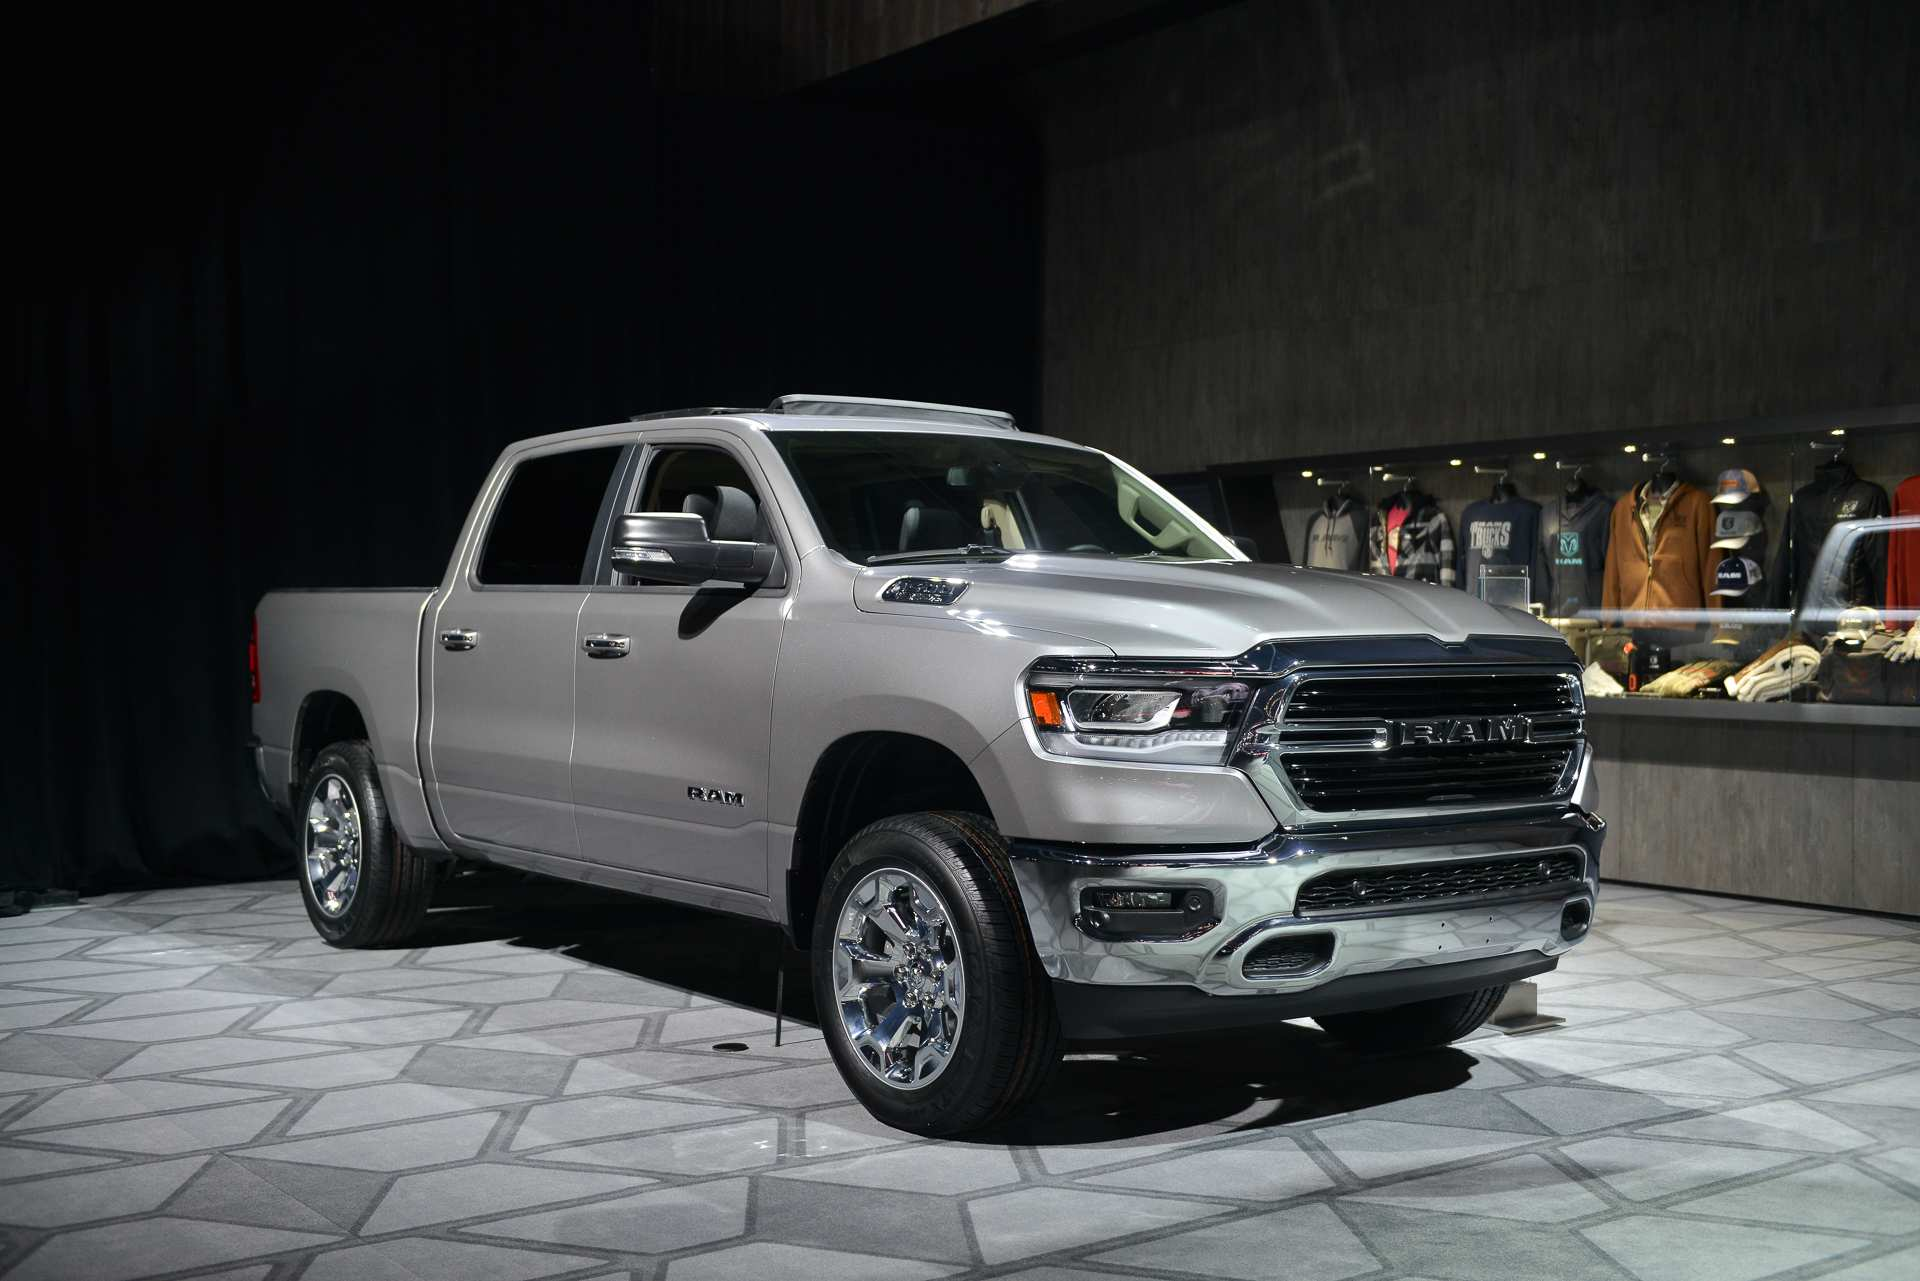 13 Gallery of 2019 Dodge 1500 For Sale Exterior for 2019 Dodge 1500 For Sale